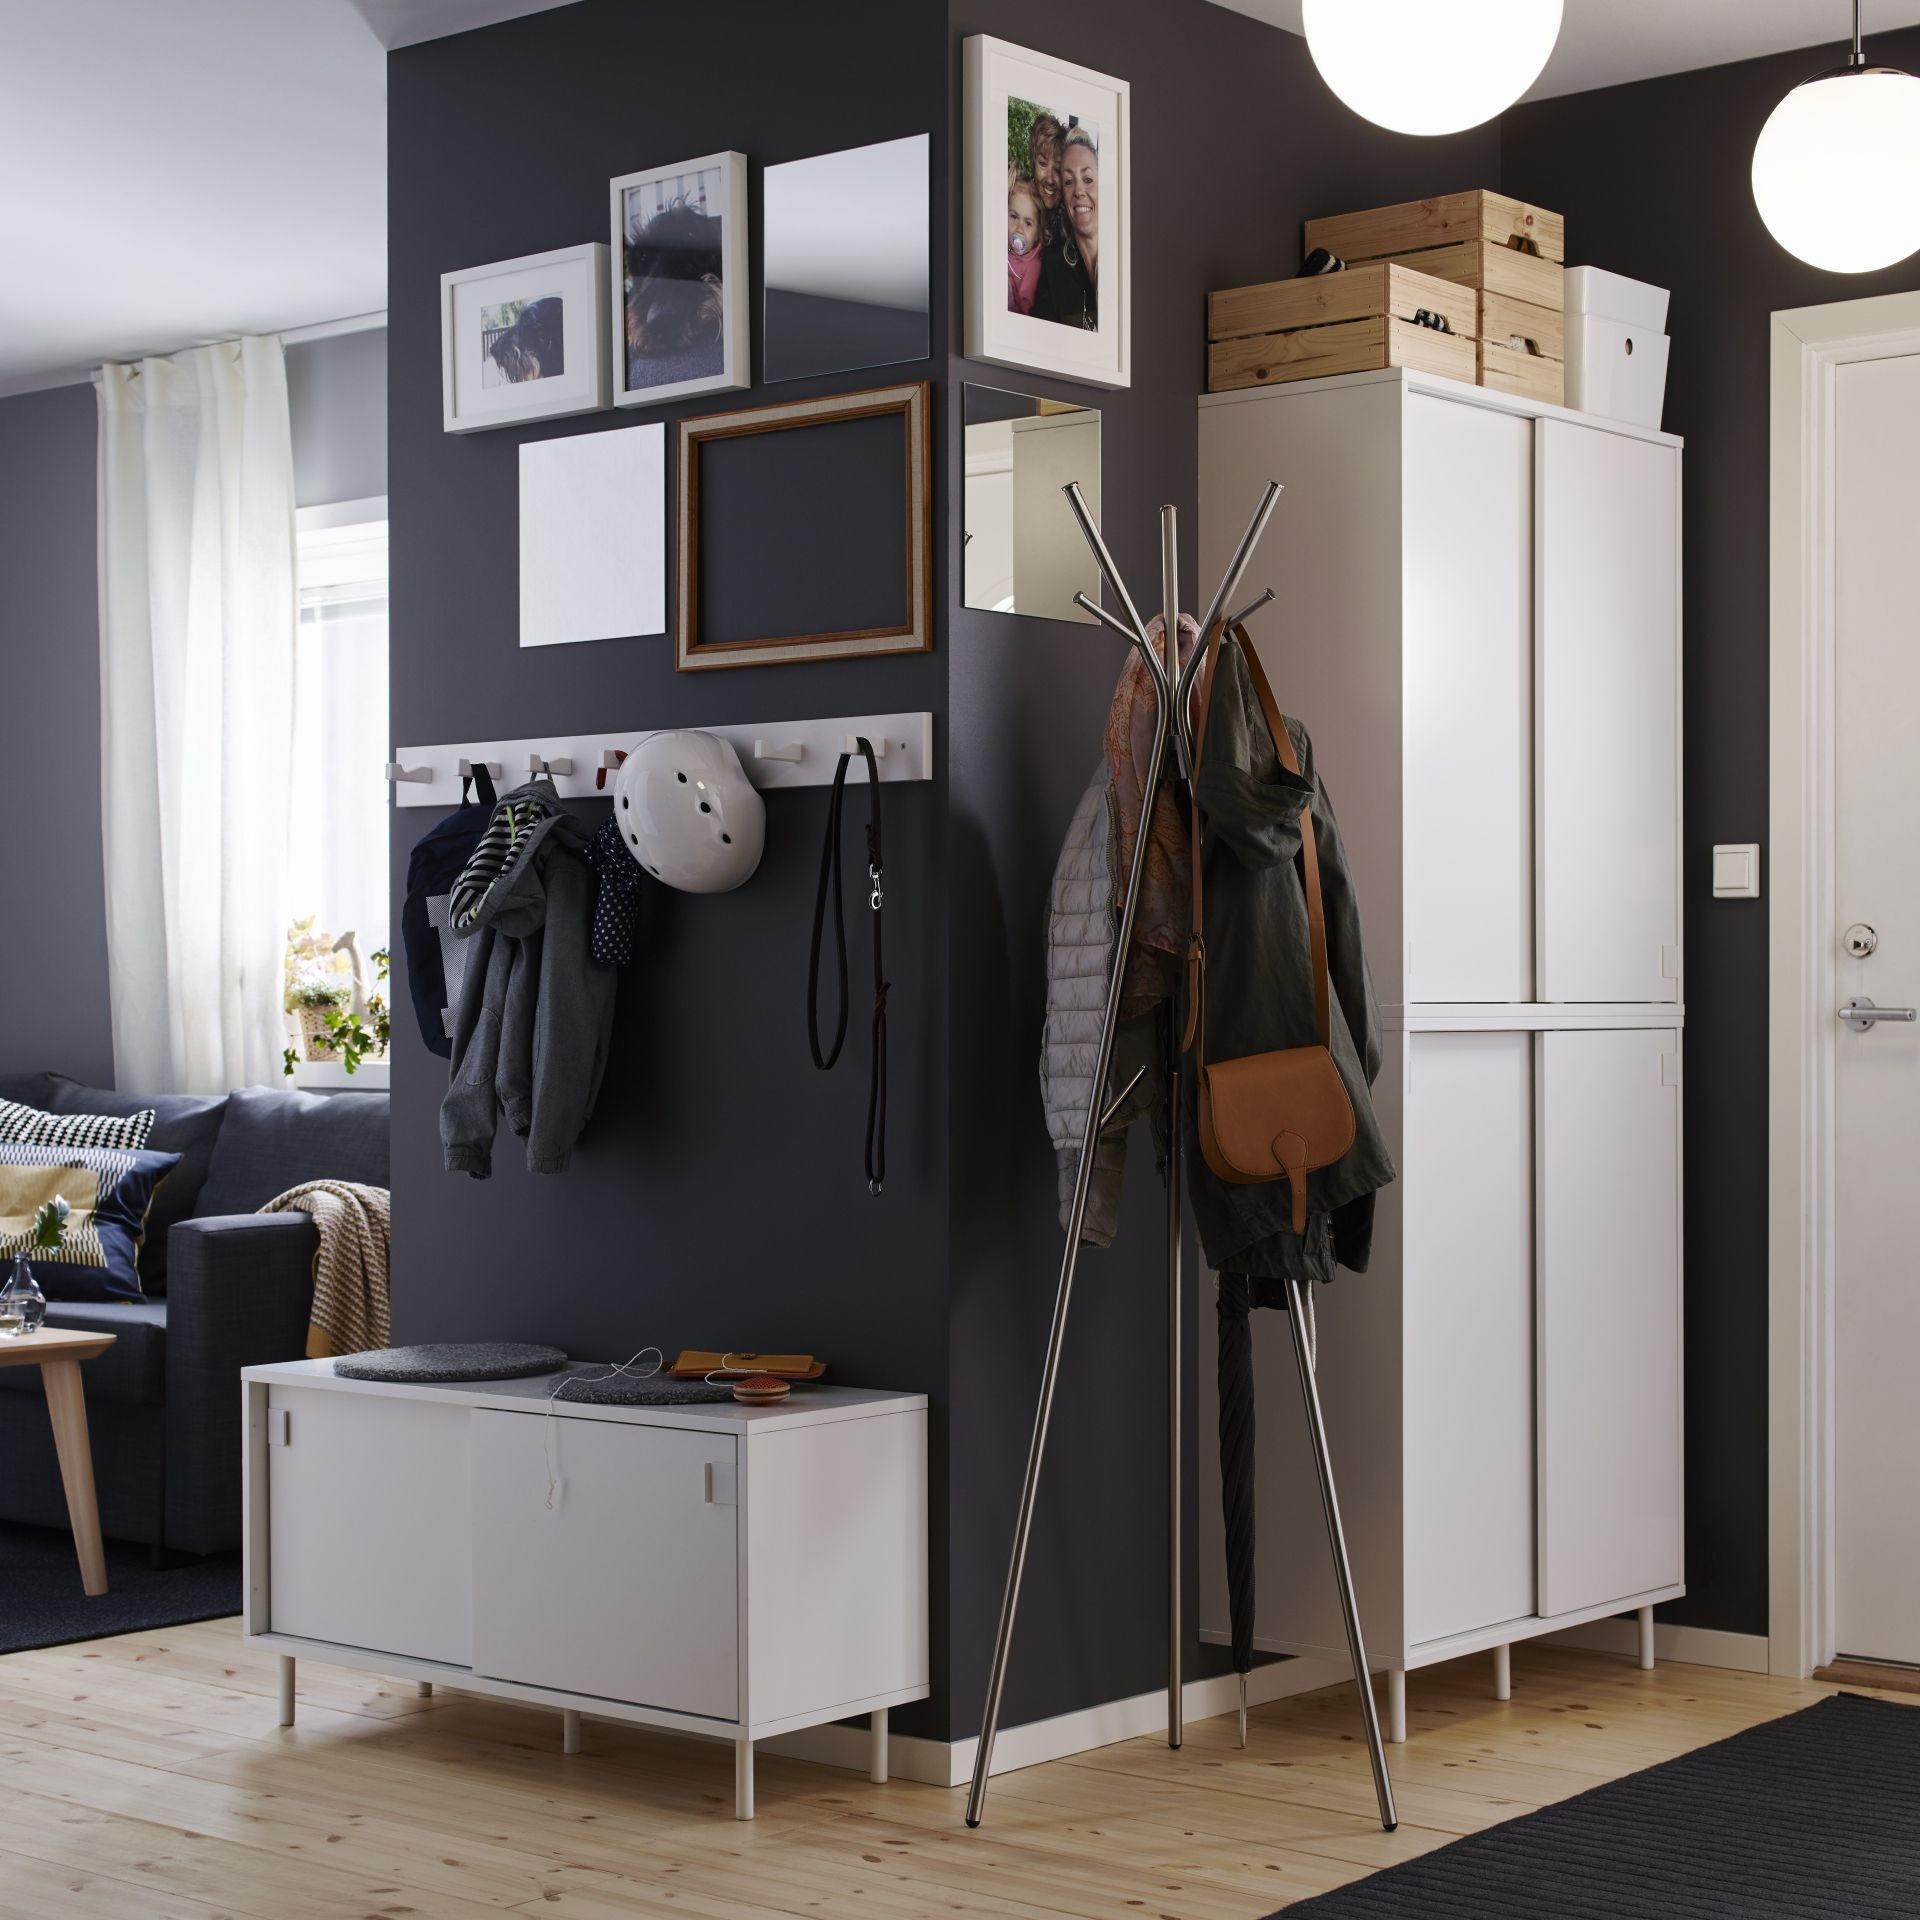 Mackap r bank met opbergvakken interiors ikea hack and for Miroir ikea noir